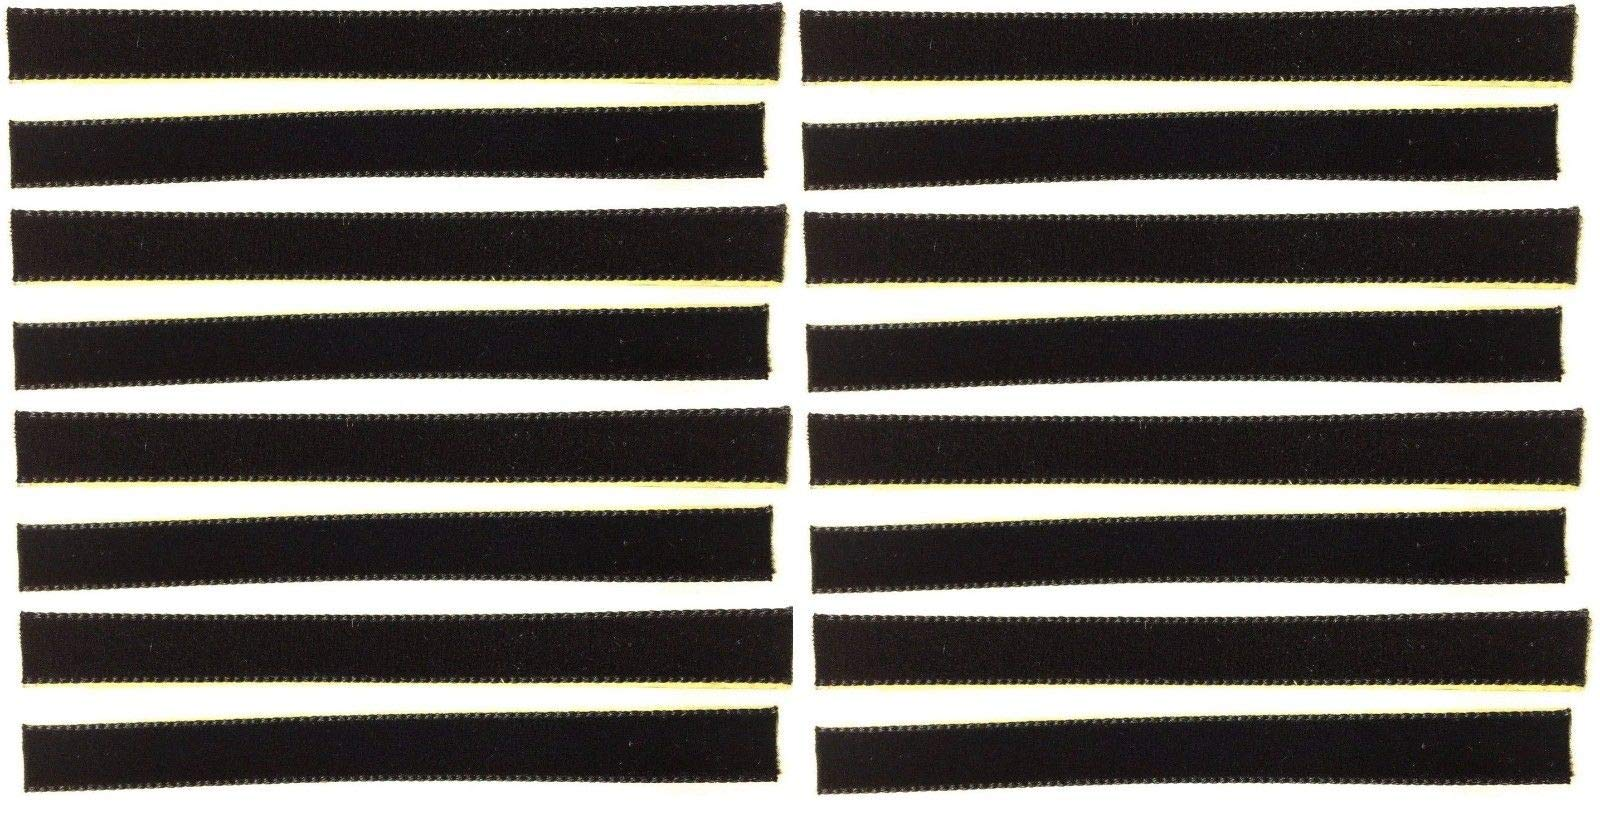 16-Pack of Black Over-Sized VPI Machine/Nitty Gritty/Okki Nokki Replacement LP Vinyl Record Album Cleaning/Cleaner Strips Oversized 3/8'' x 4'' Velvet/Felt/3M Adhesive by Capitol Collectibles